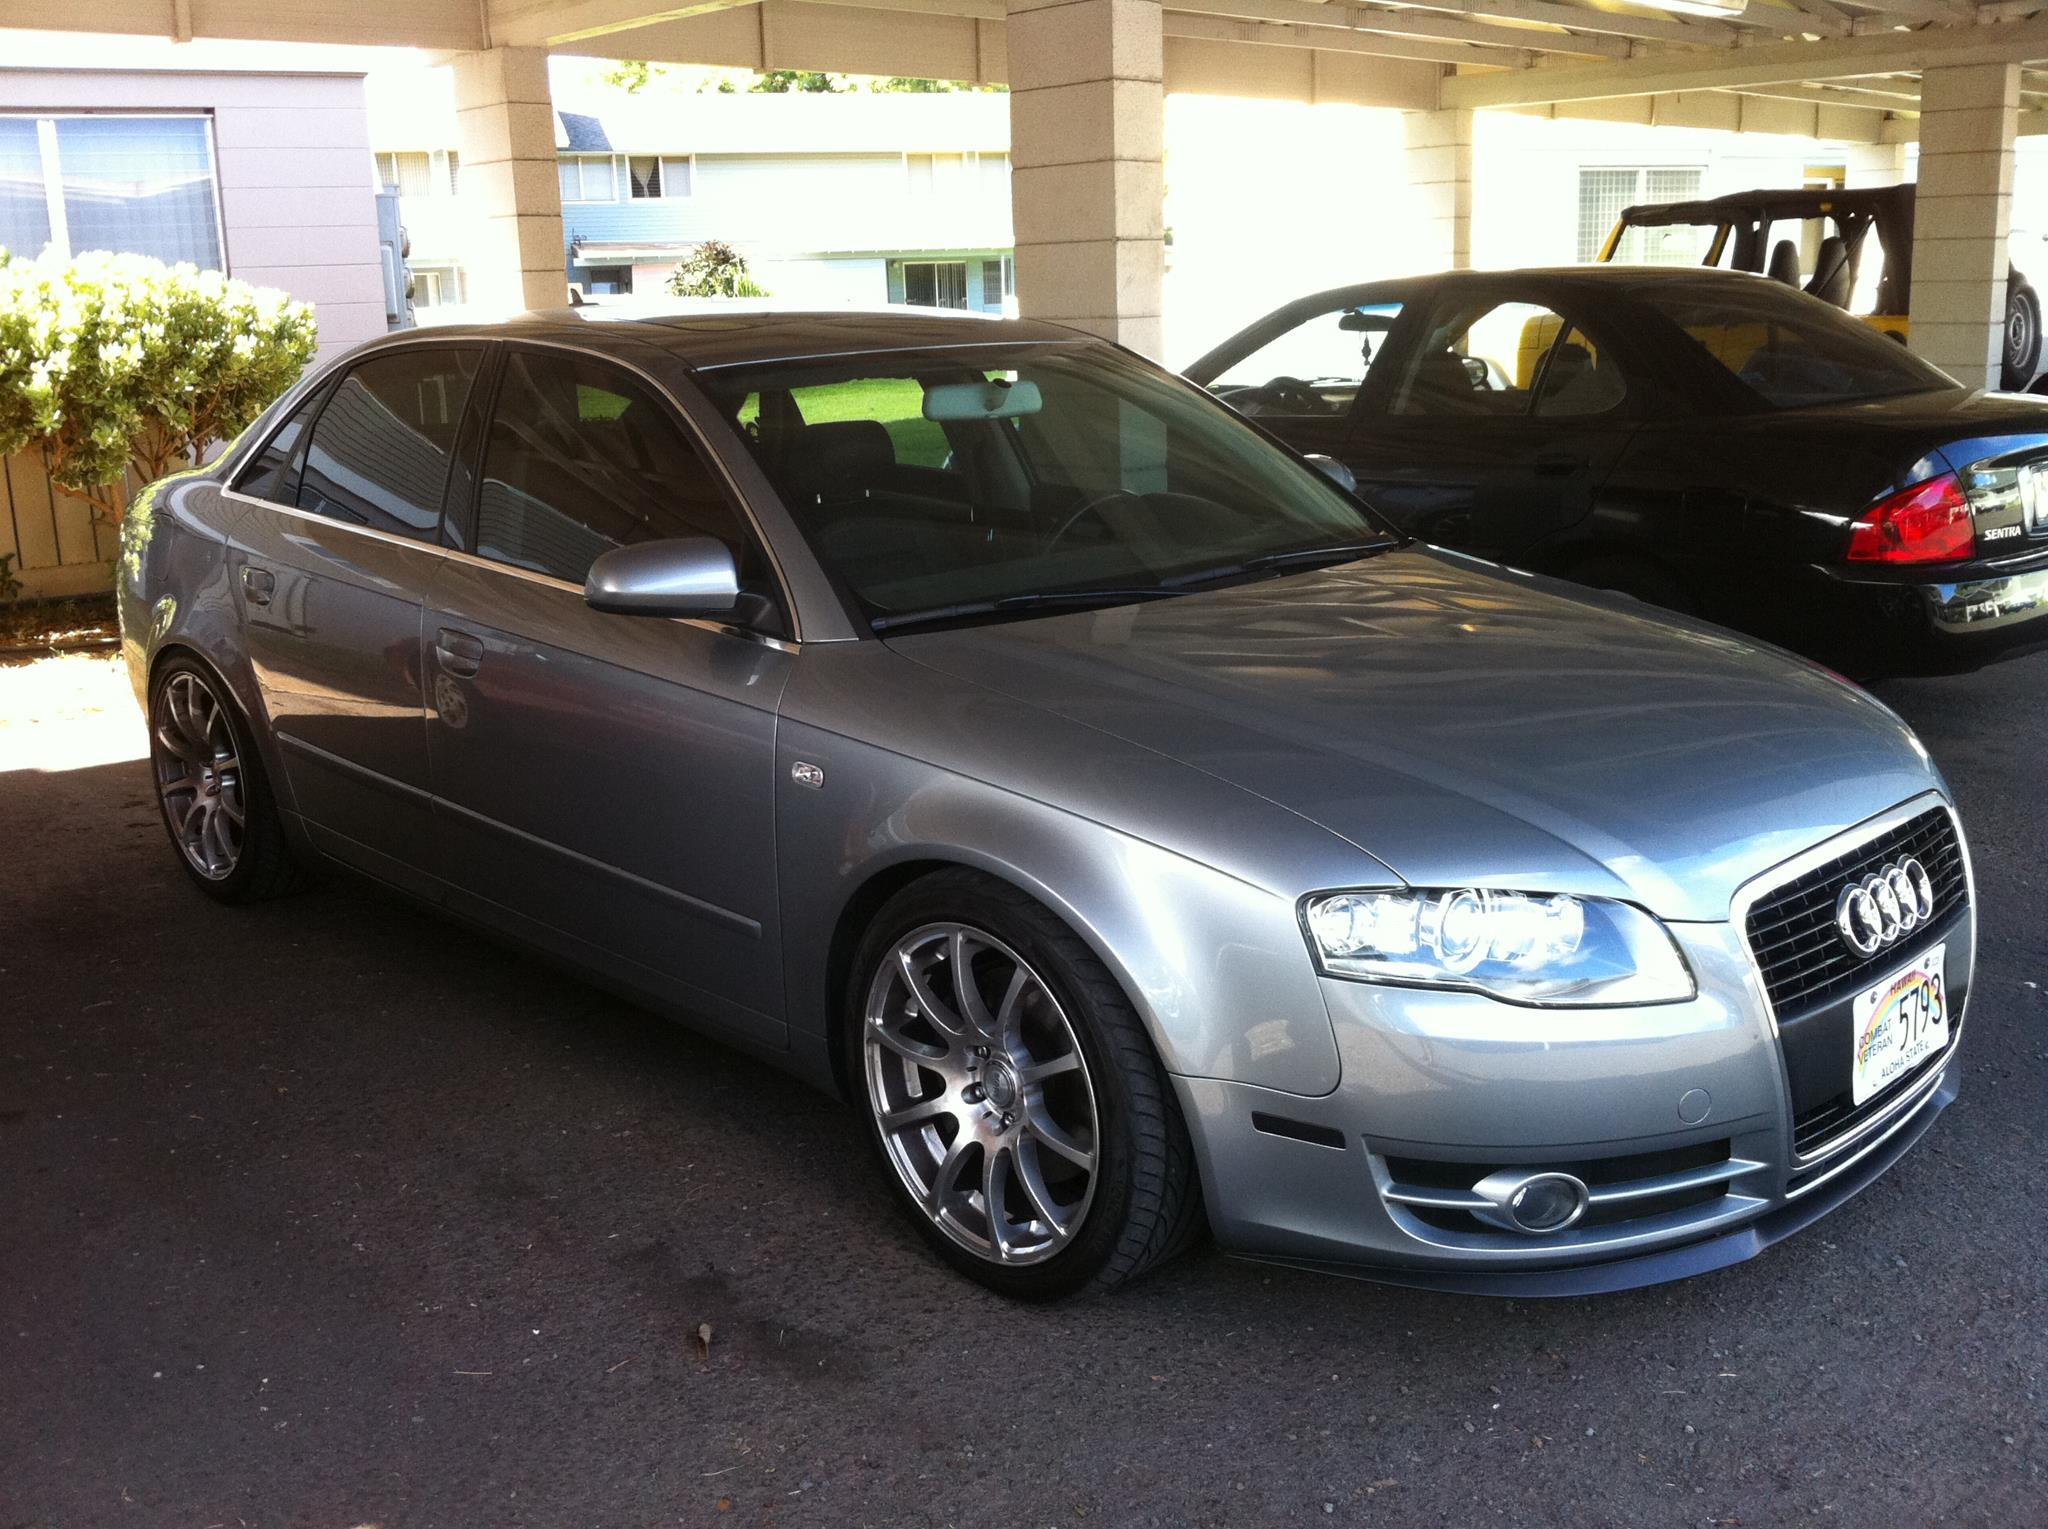 kurupt hawaiian 2007 audi a42 0t sedan 4d specs photos modification info at cardomain. Black Bedroom Furniture Sets. Home Design Ideas